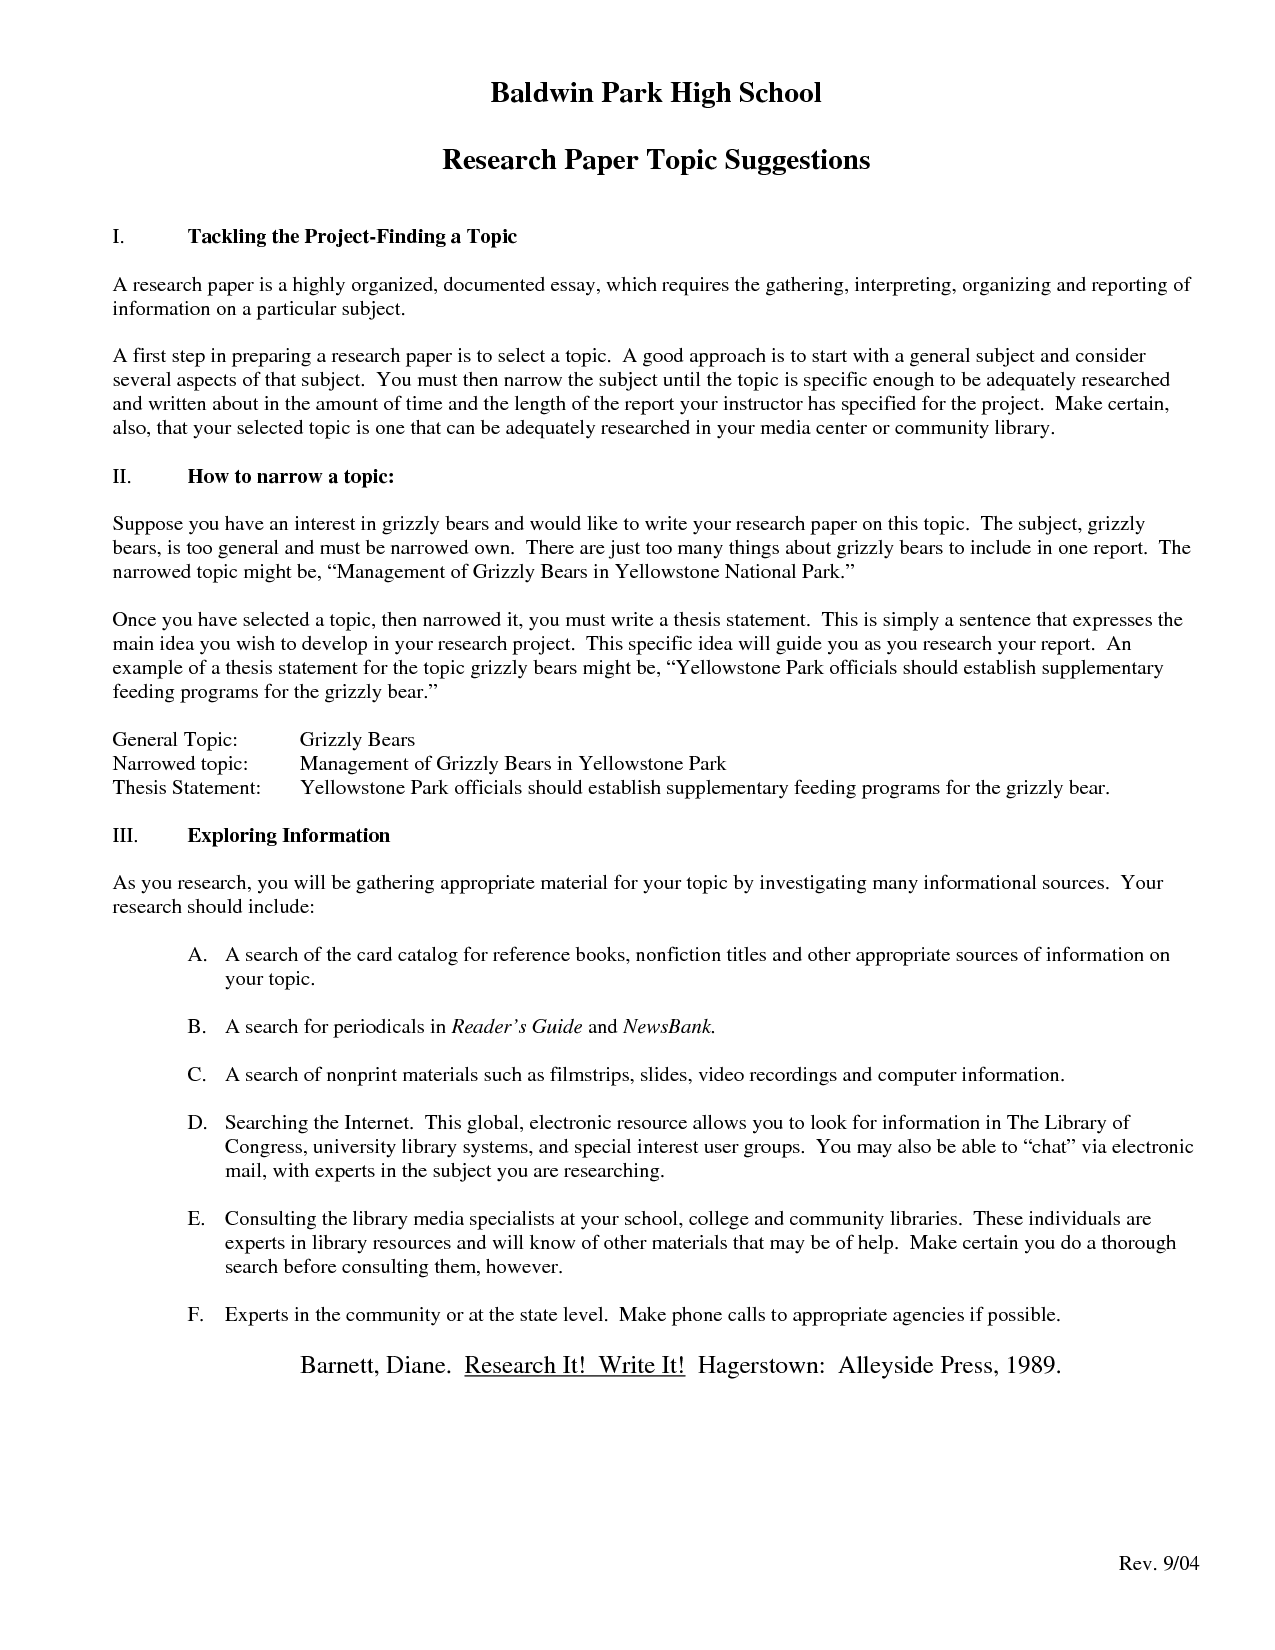 015 Topics To Do Research Paper Dreaded A On Controversial Good Write History Computer Science Full